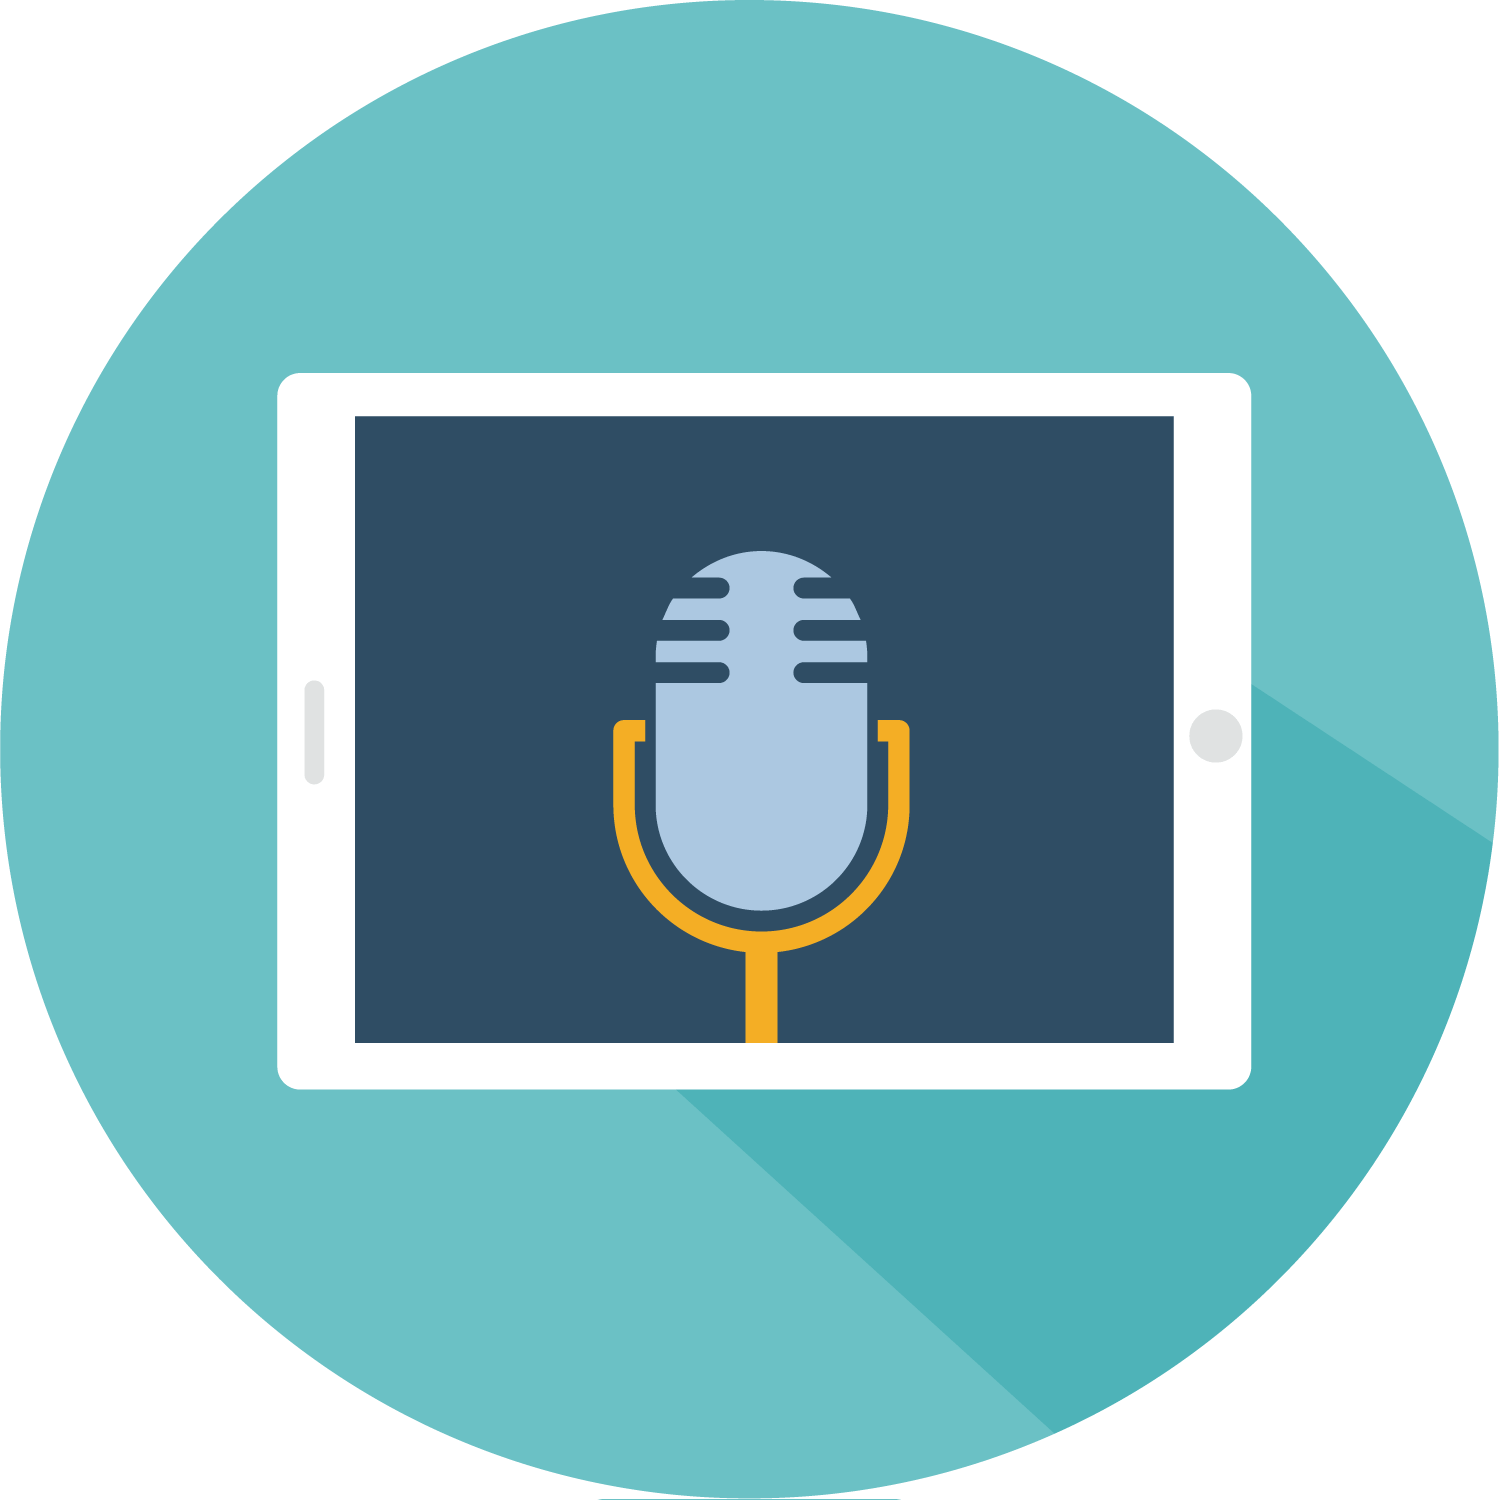 Voice biomarkers